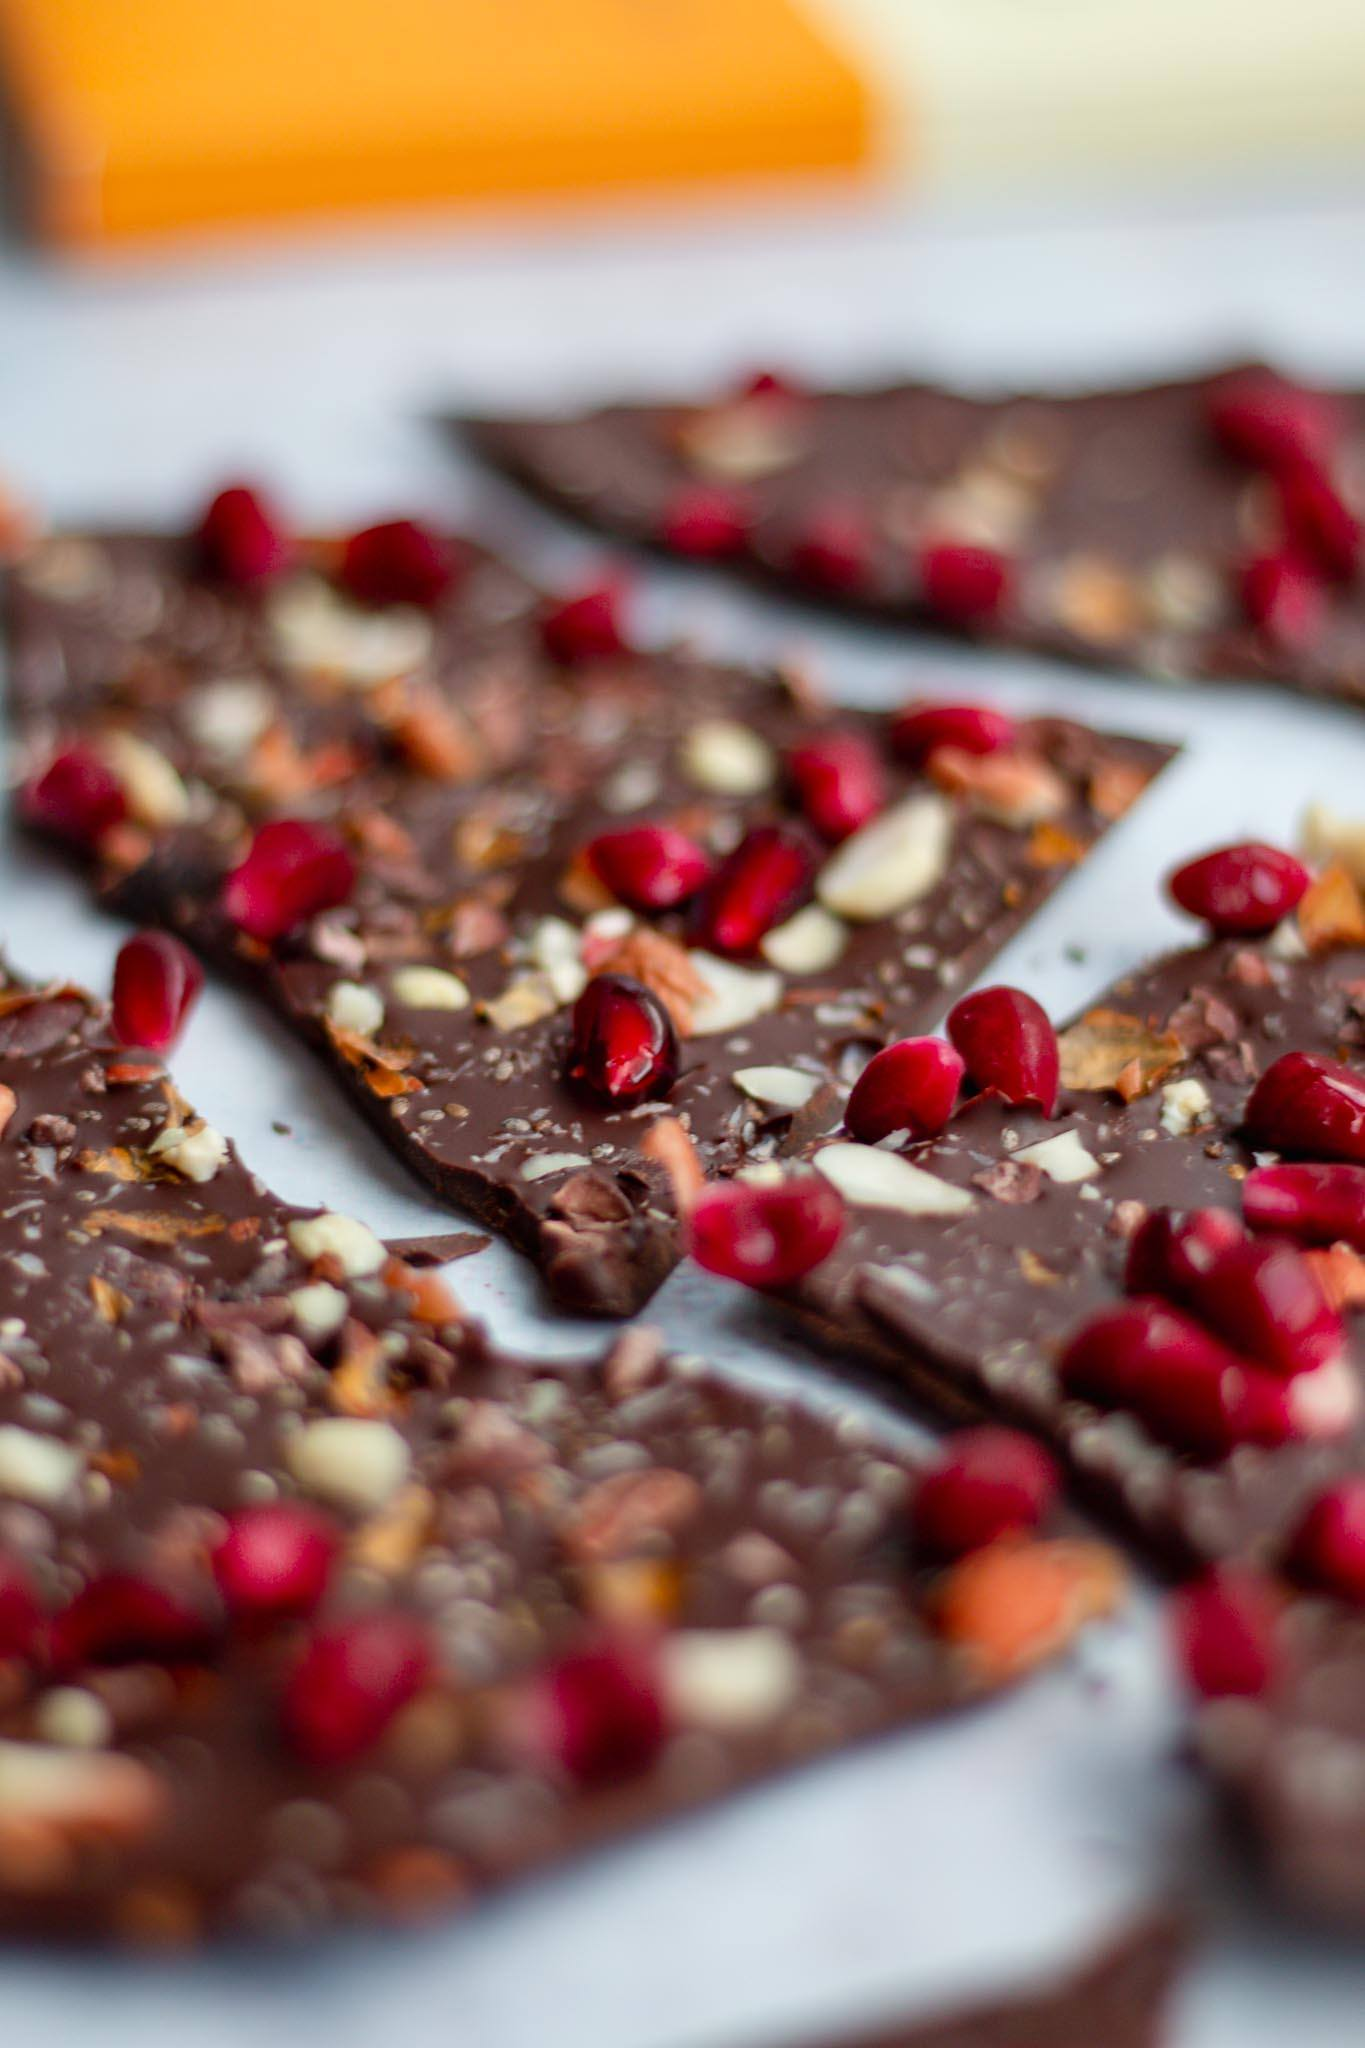 pomegranate nut pomegranate bark